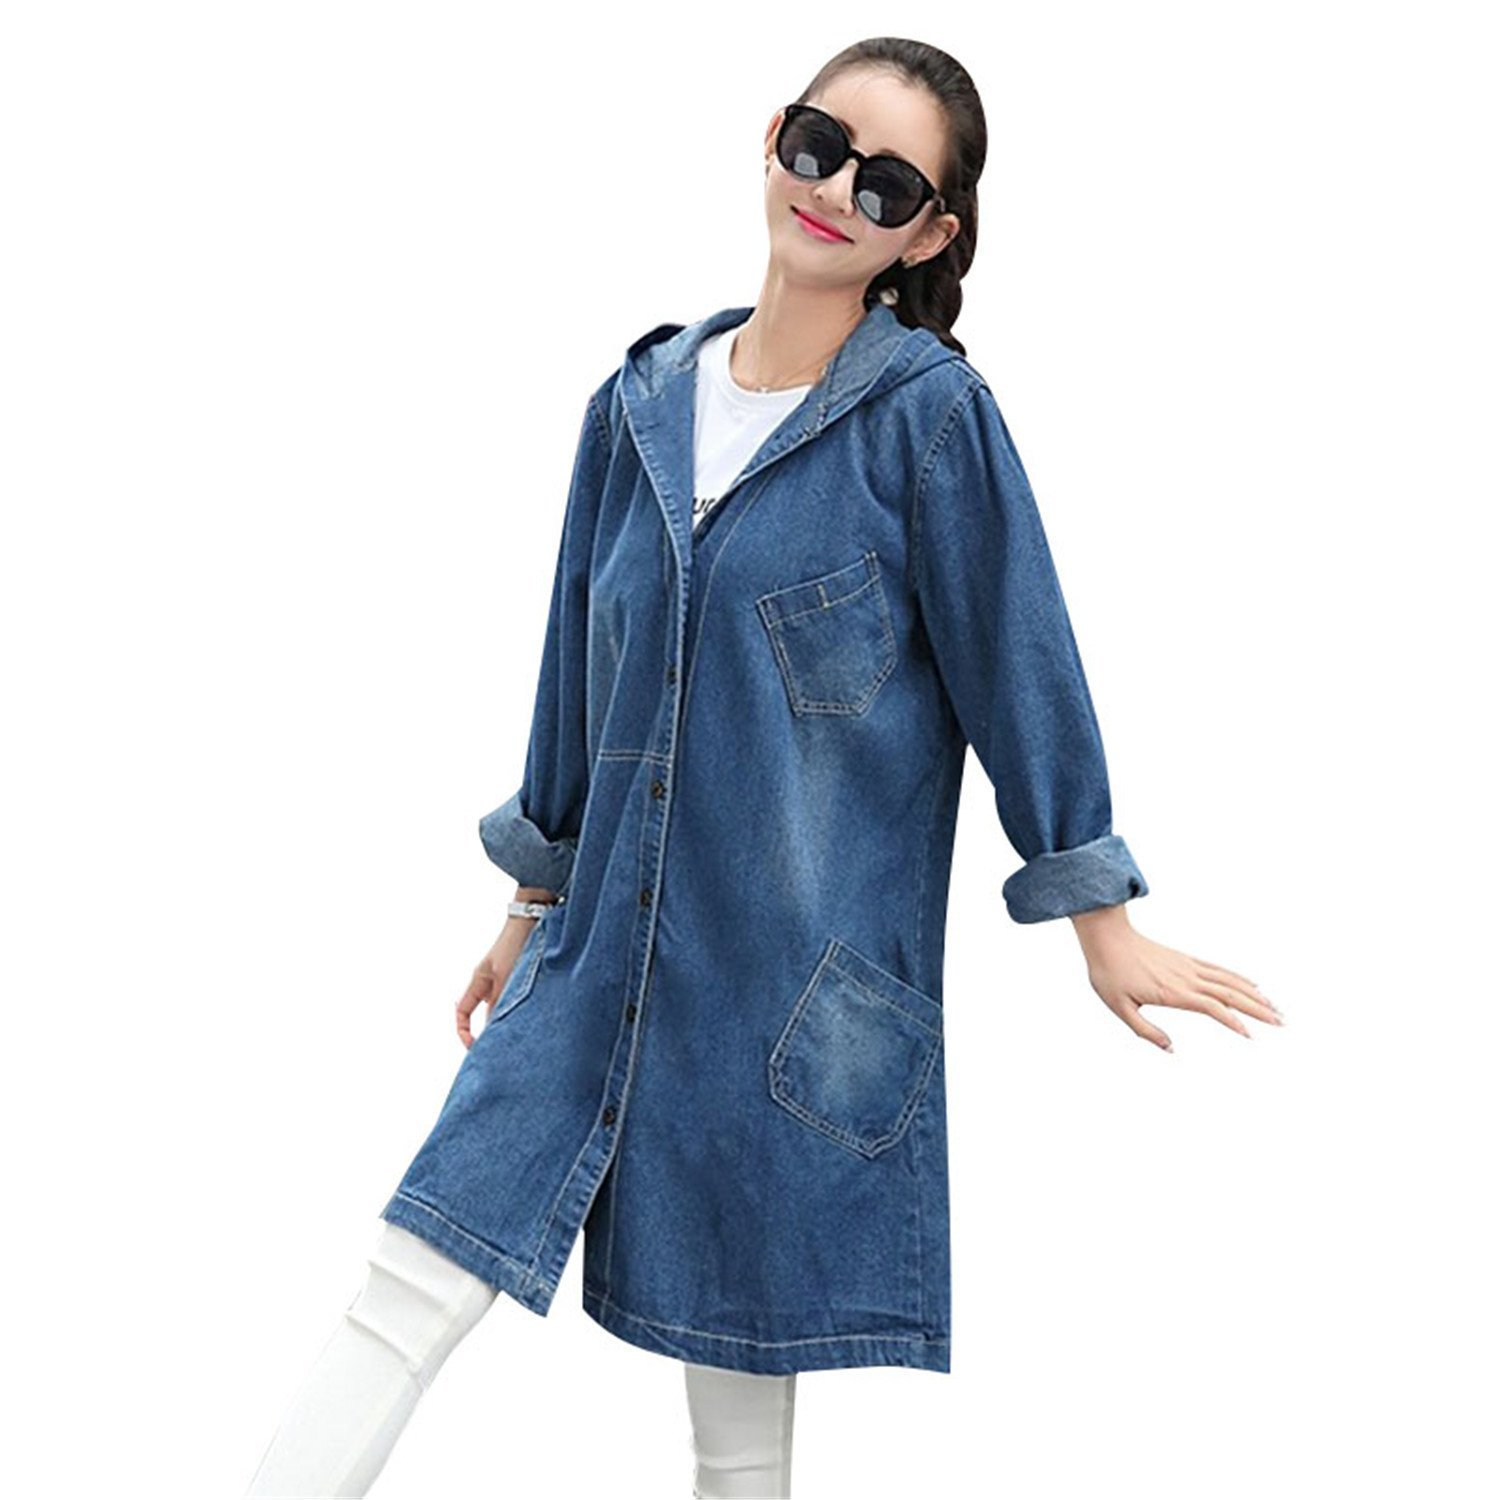 6b8f49b41 Shining4U Women Casual Loose Jean Jackets Girls Streetwear Plus Size ...